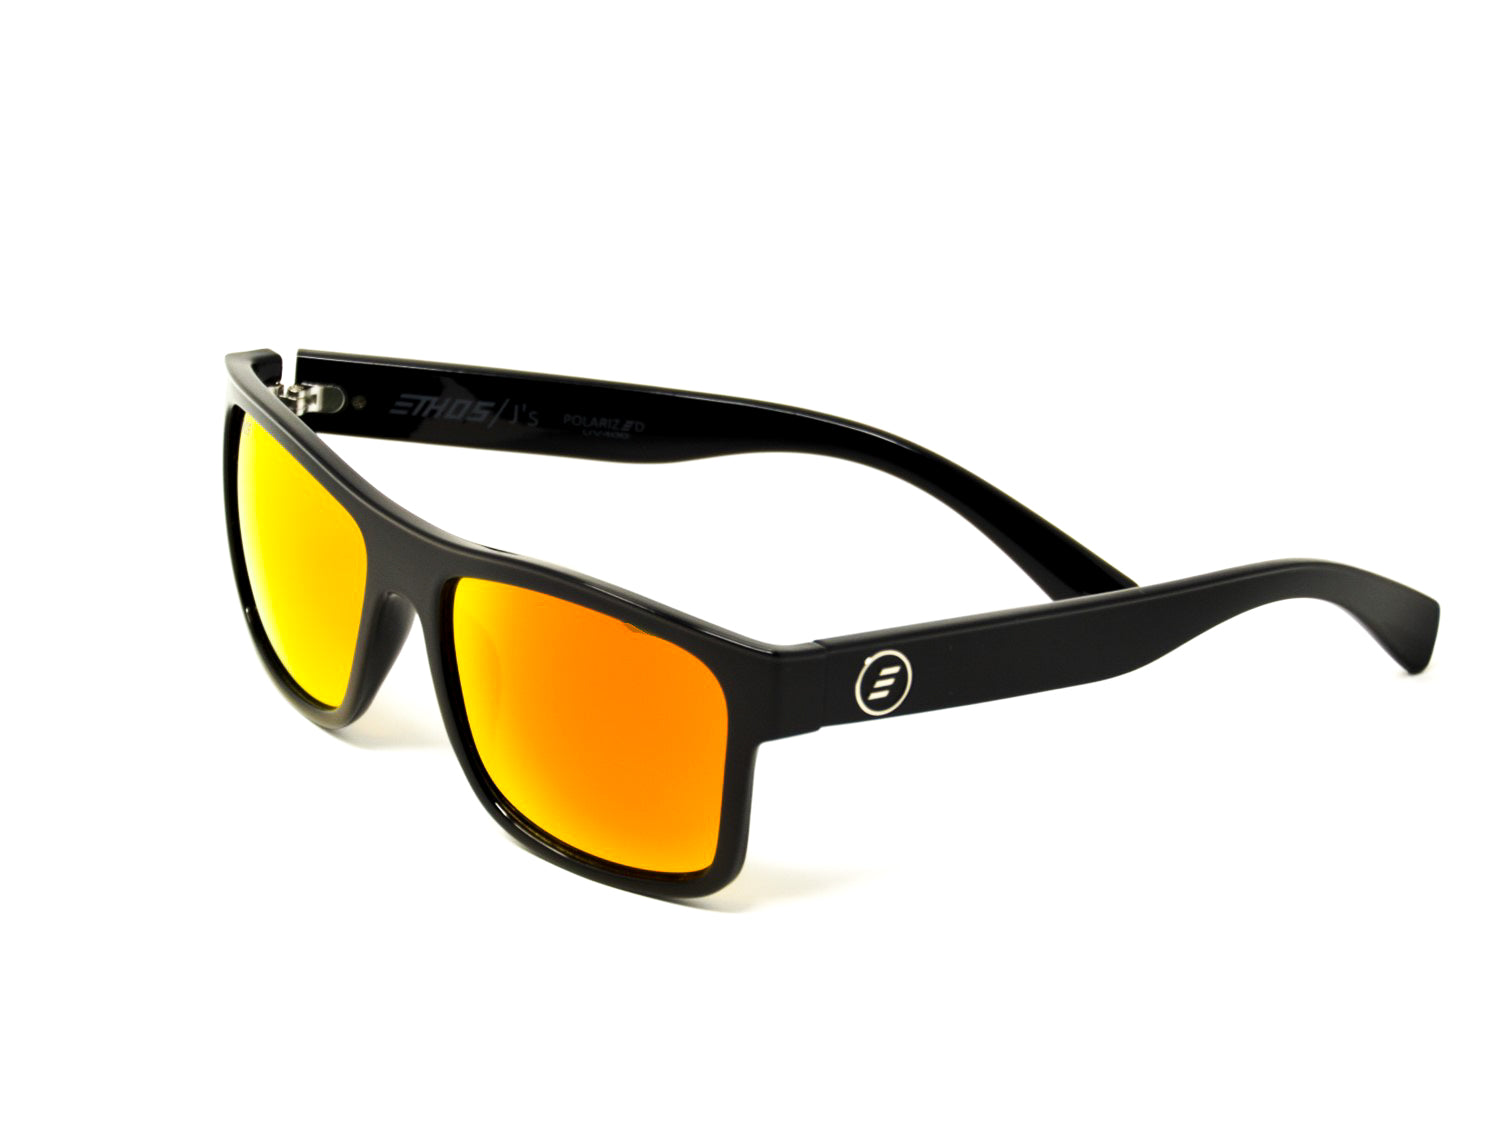 Ethos J's sunglasses with gloss black TR90 frame and blaze polarized mirrored lens